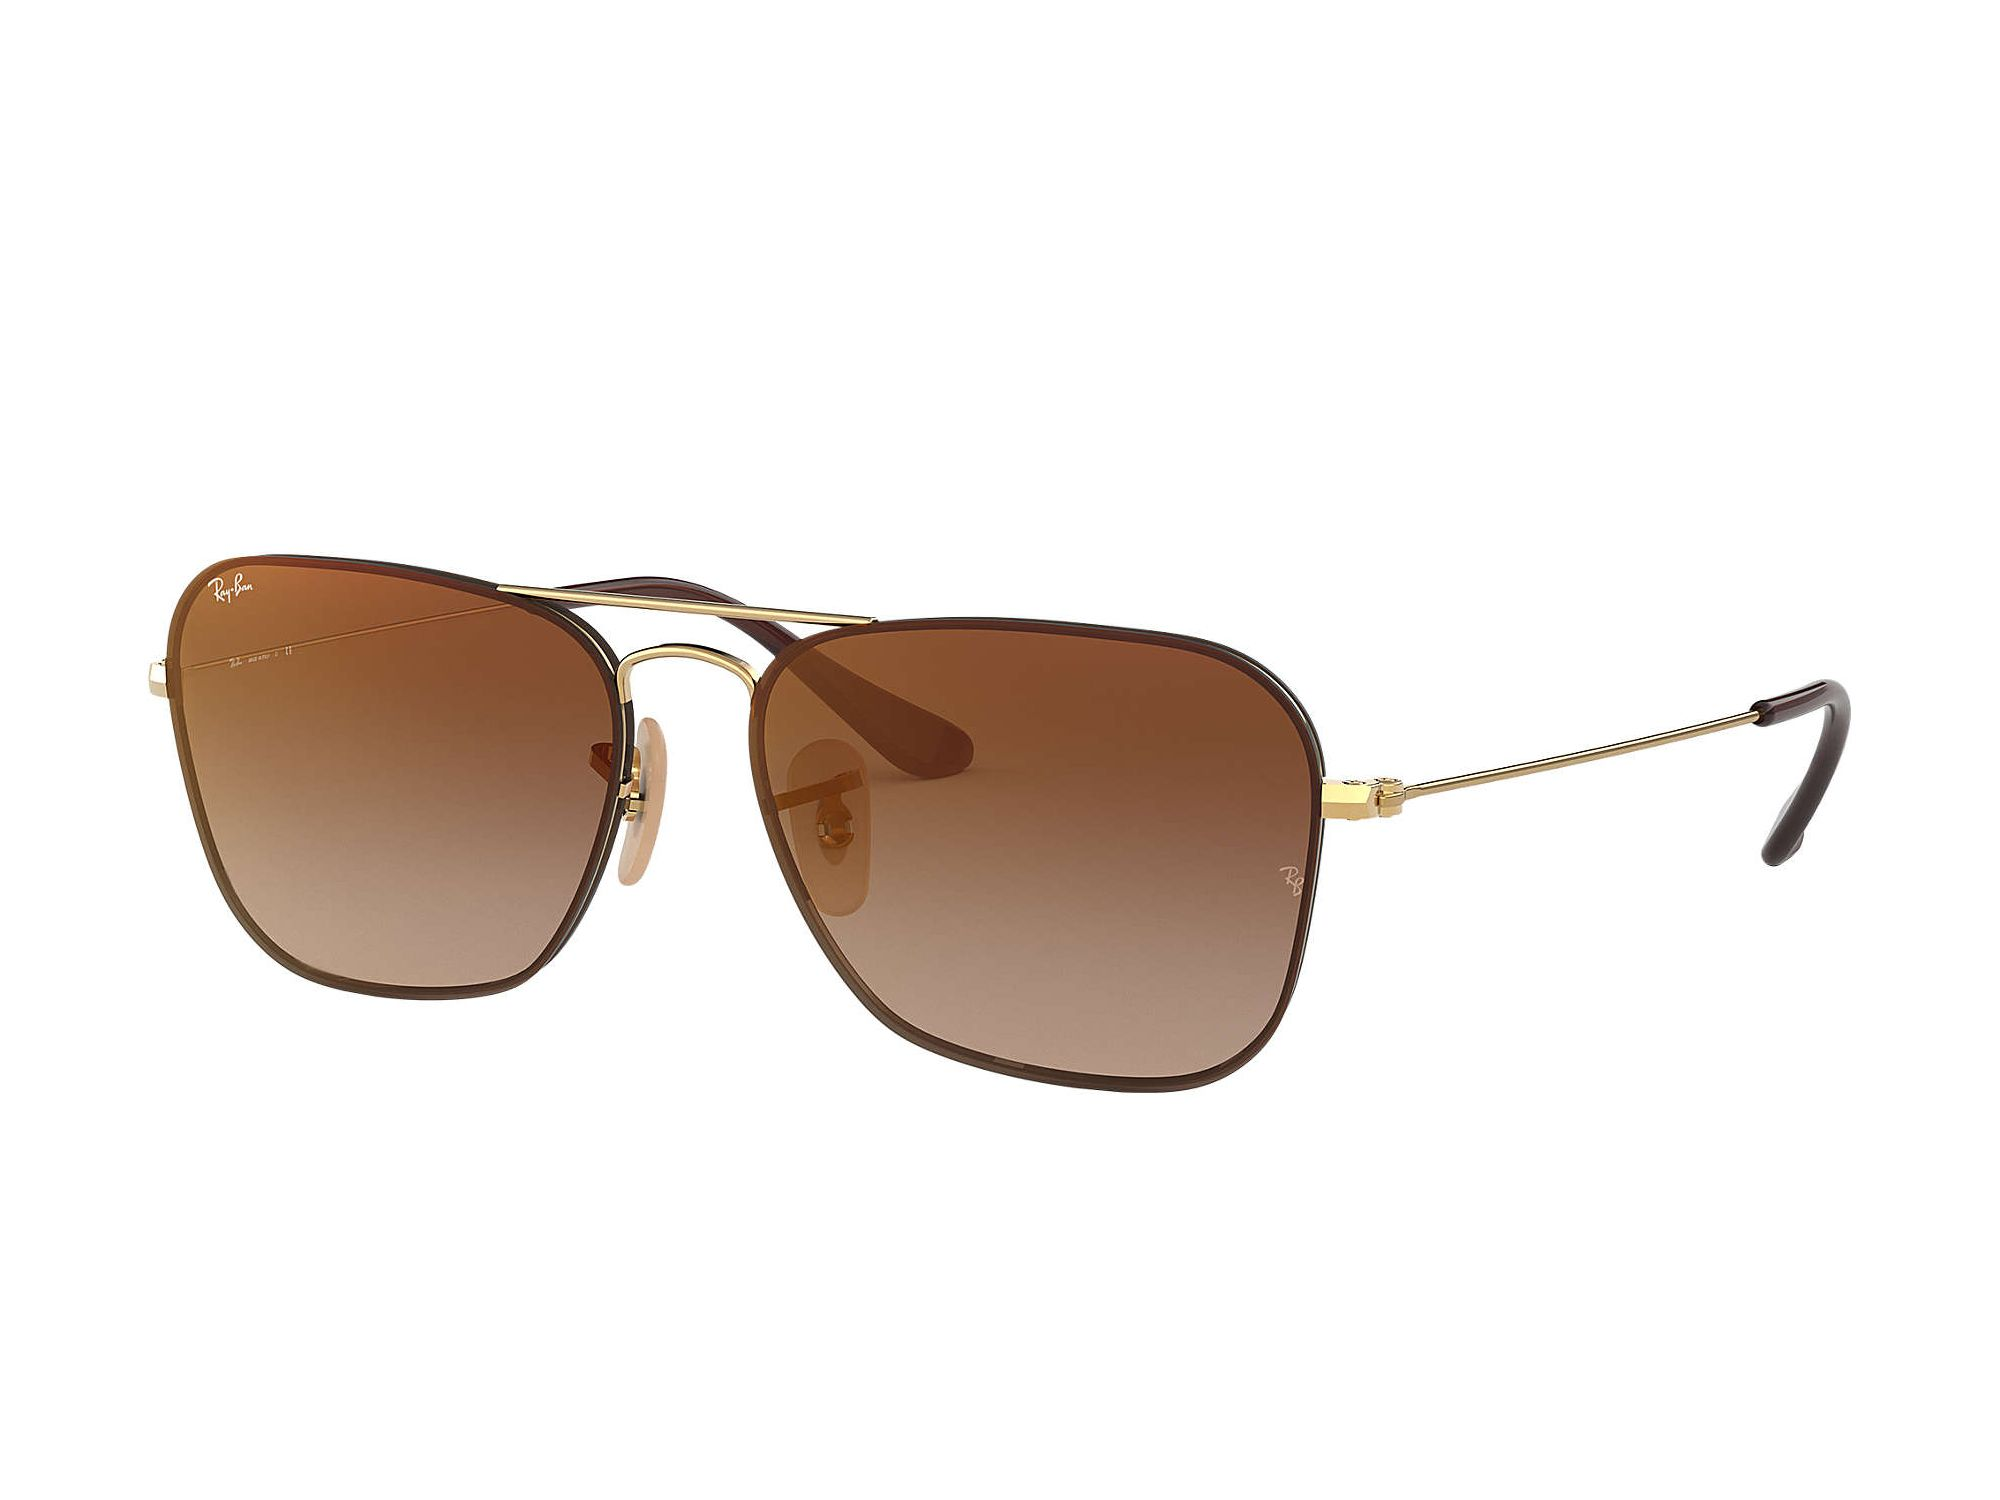 Mirror Frame Glasses Ray Ban Rb3603 Sunglasses Gold Metal Frames And Brown Gradient Mirror Lenses